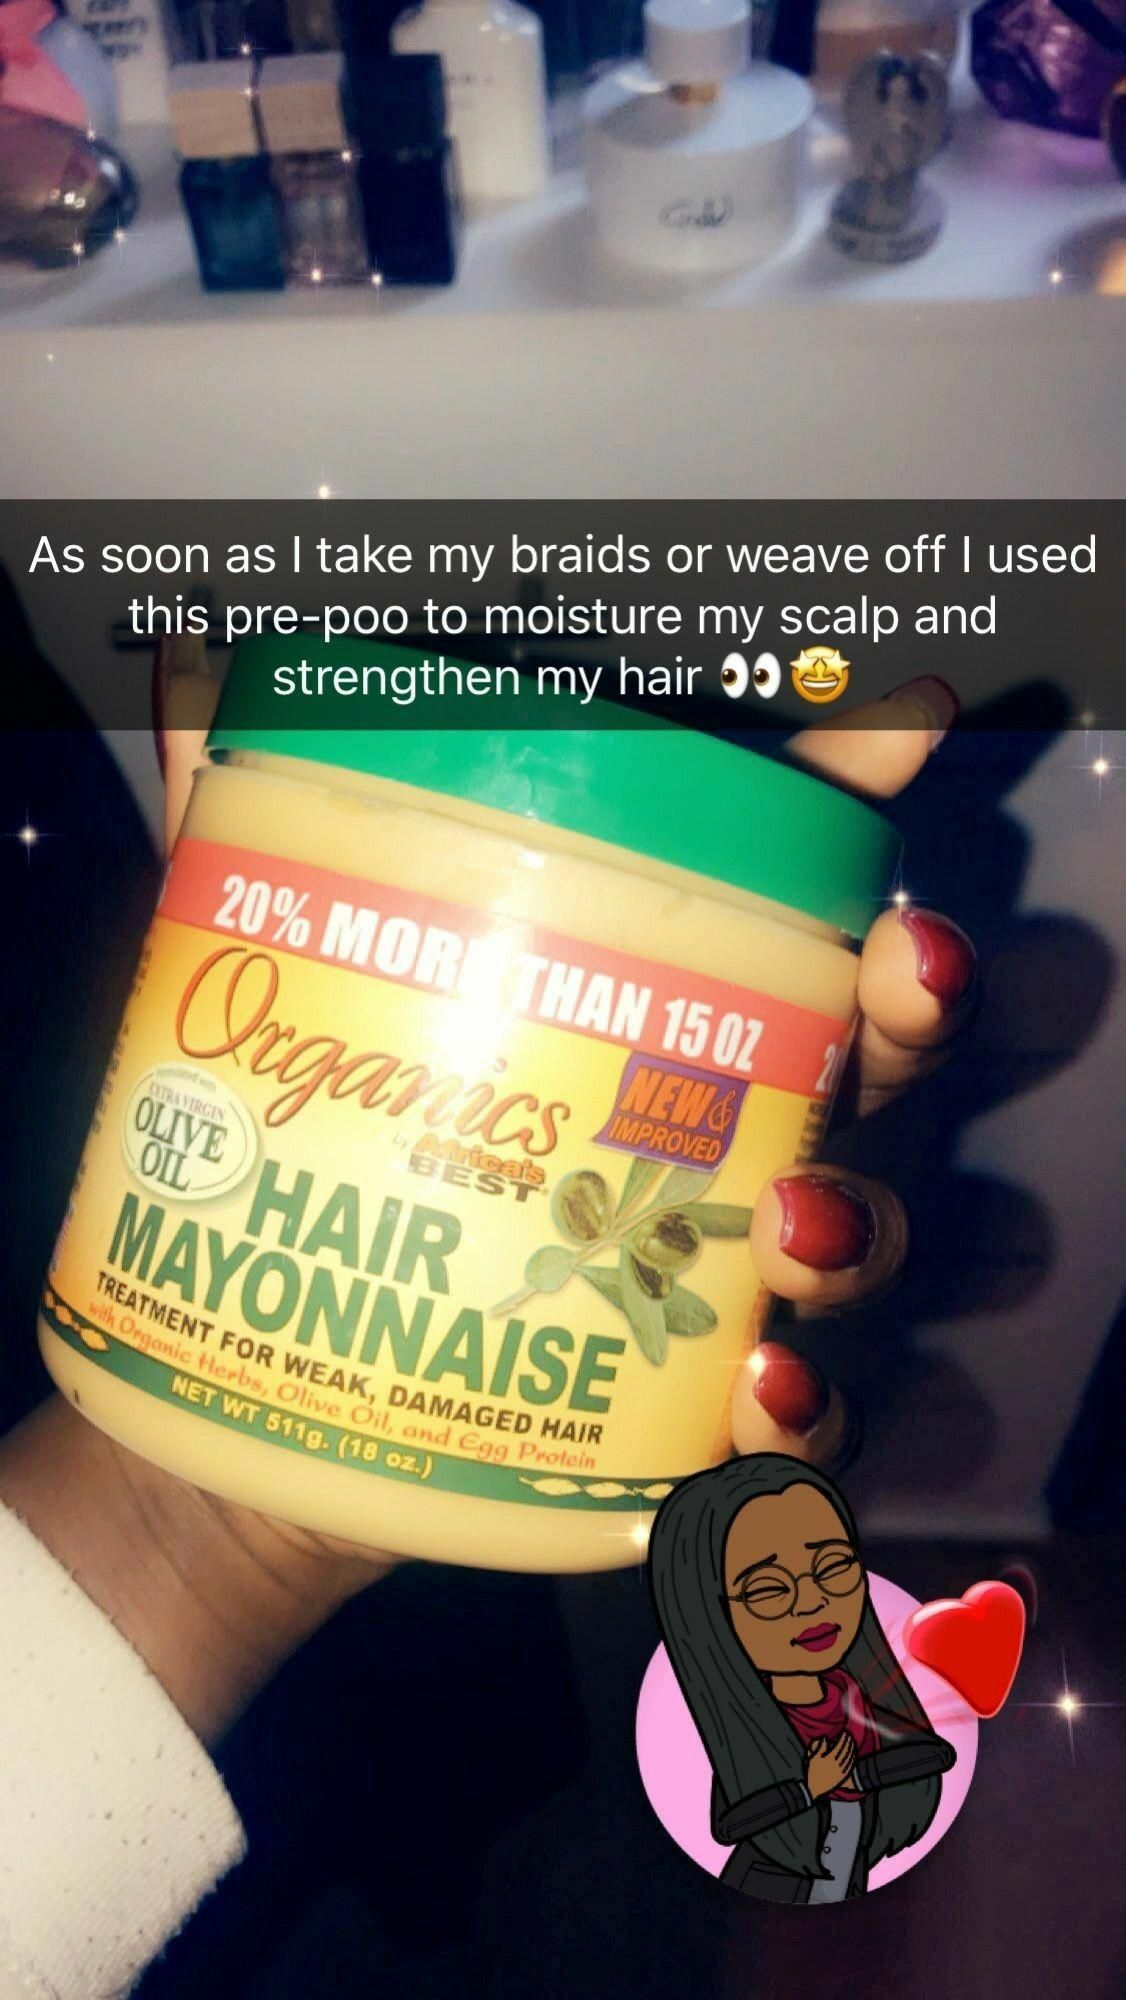 Affordable Natural Hair Products | Hair Care Products For African Hair | The Natural Hair 20190418 #naturalhairjourney